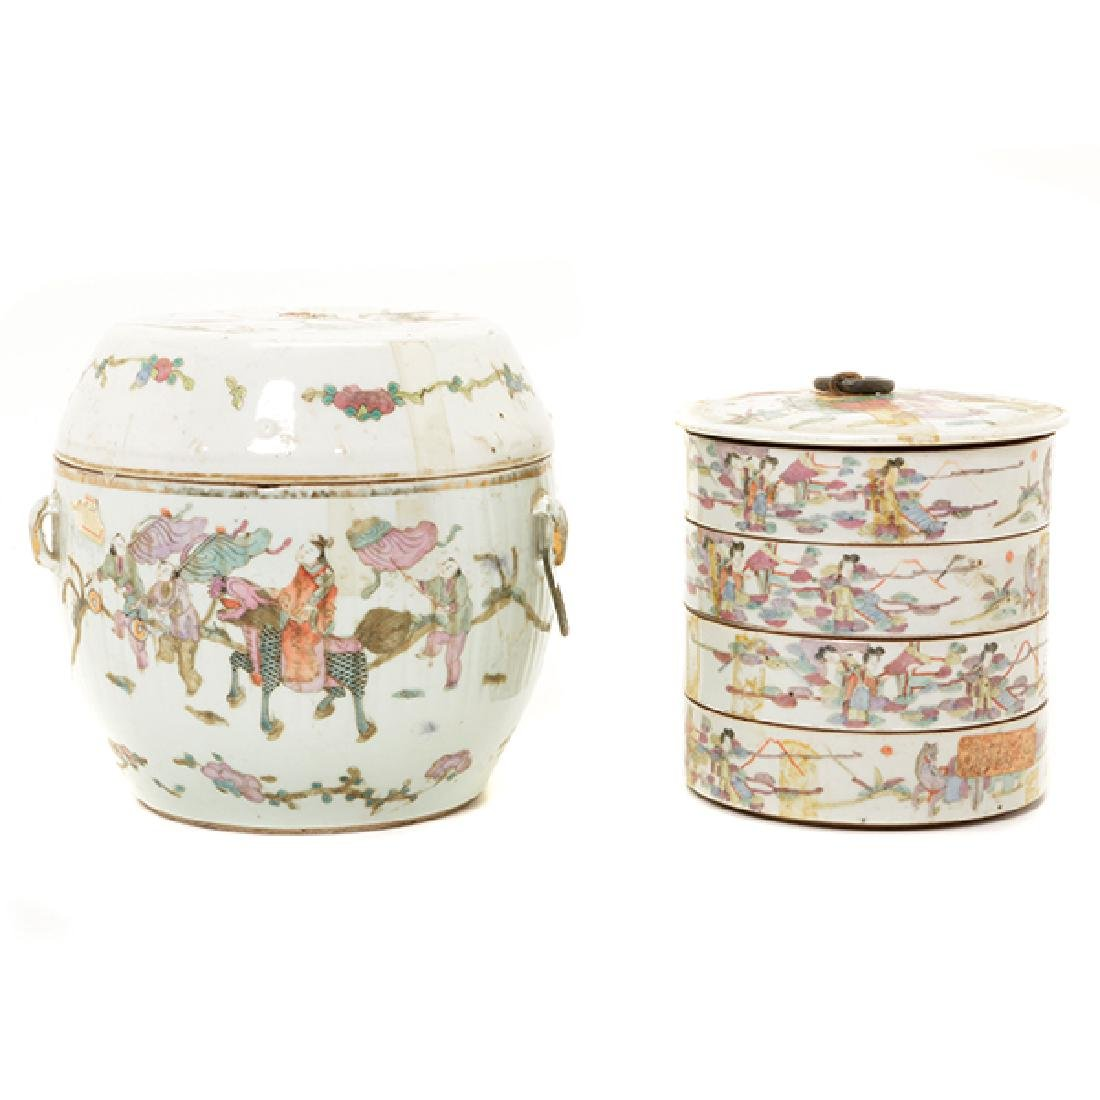 Two Famille Rose Containers, Late 19th Century